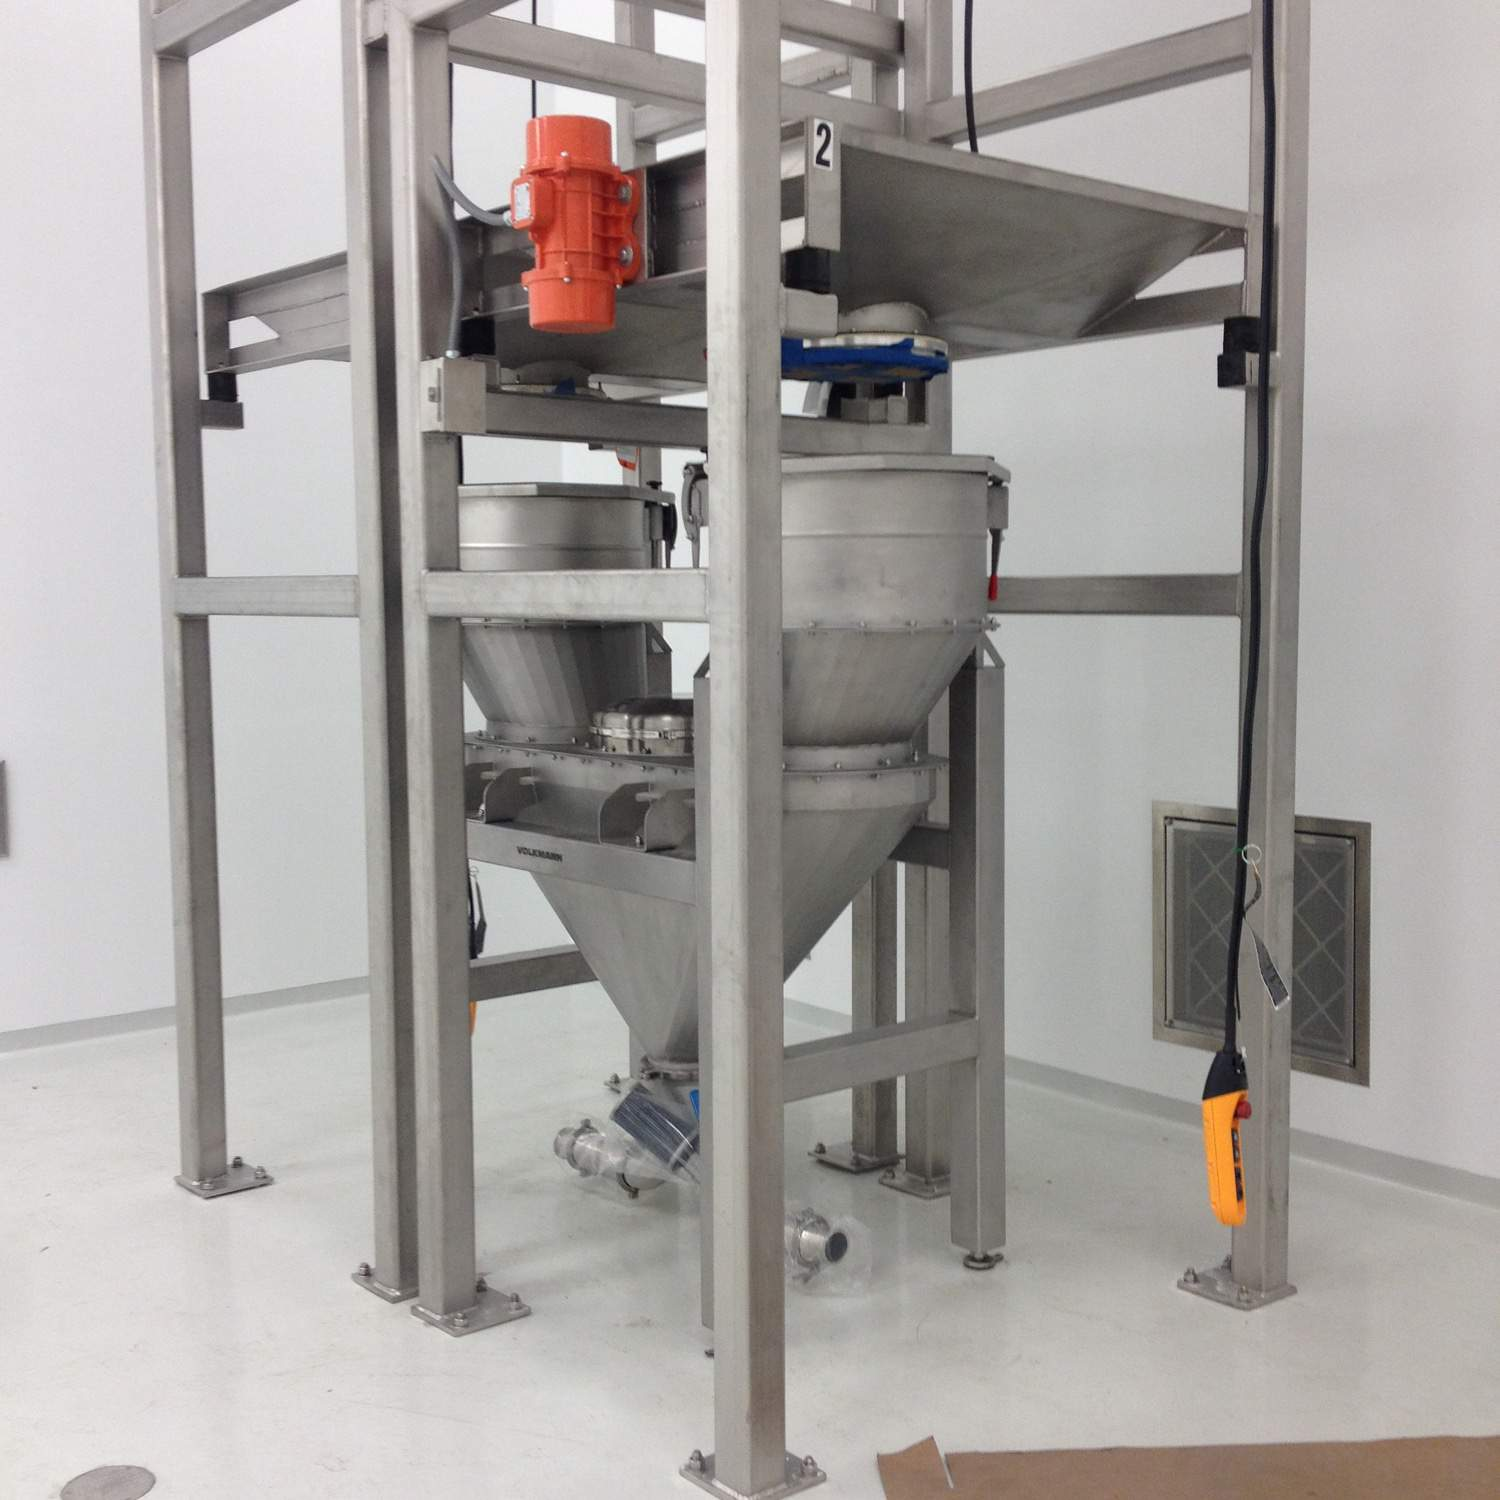 Volkmann Idea Saves Space, Reduces Stoppages for Bag Changing